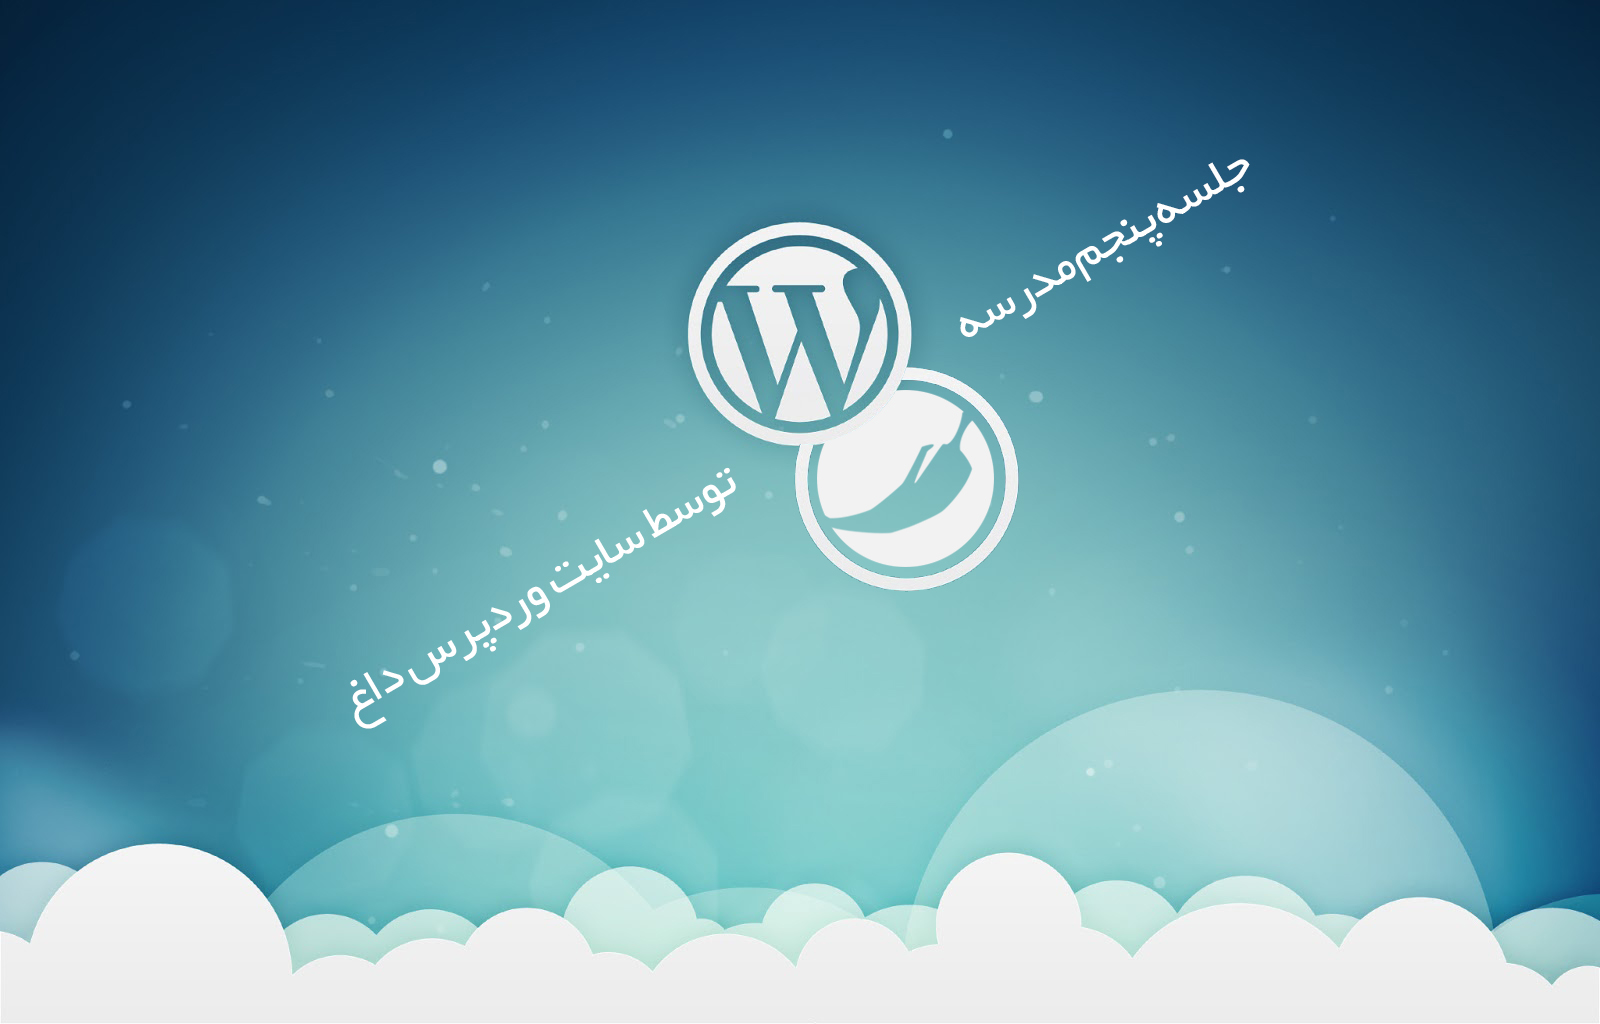 school-wordpress-redwp-5